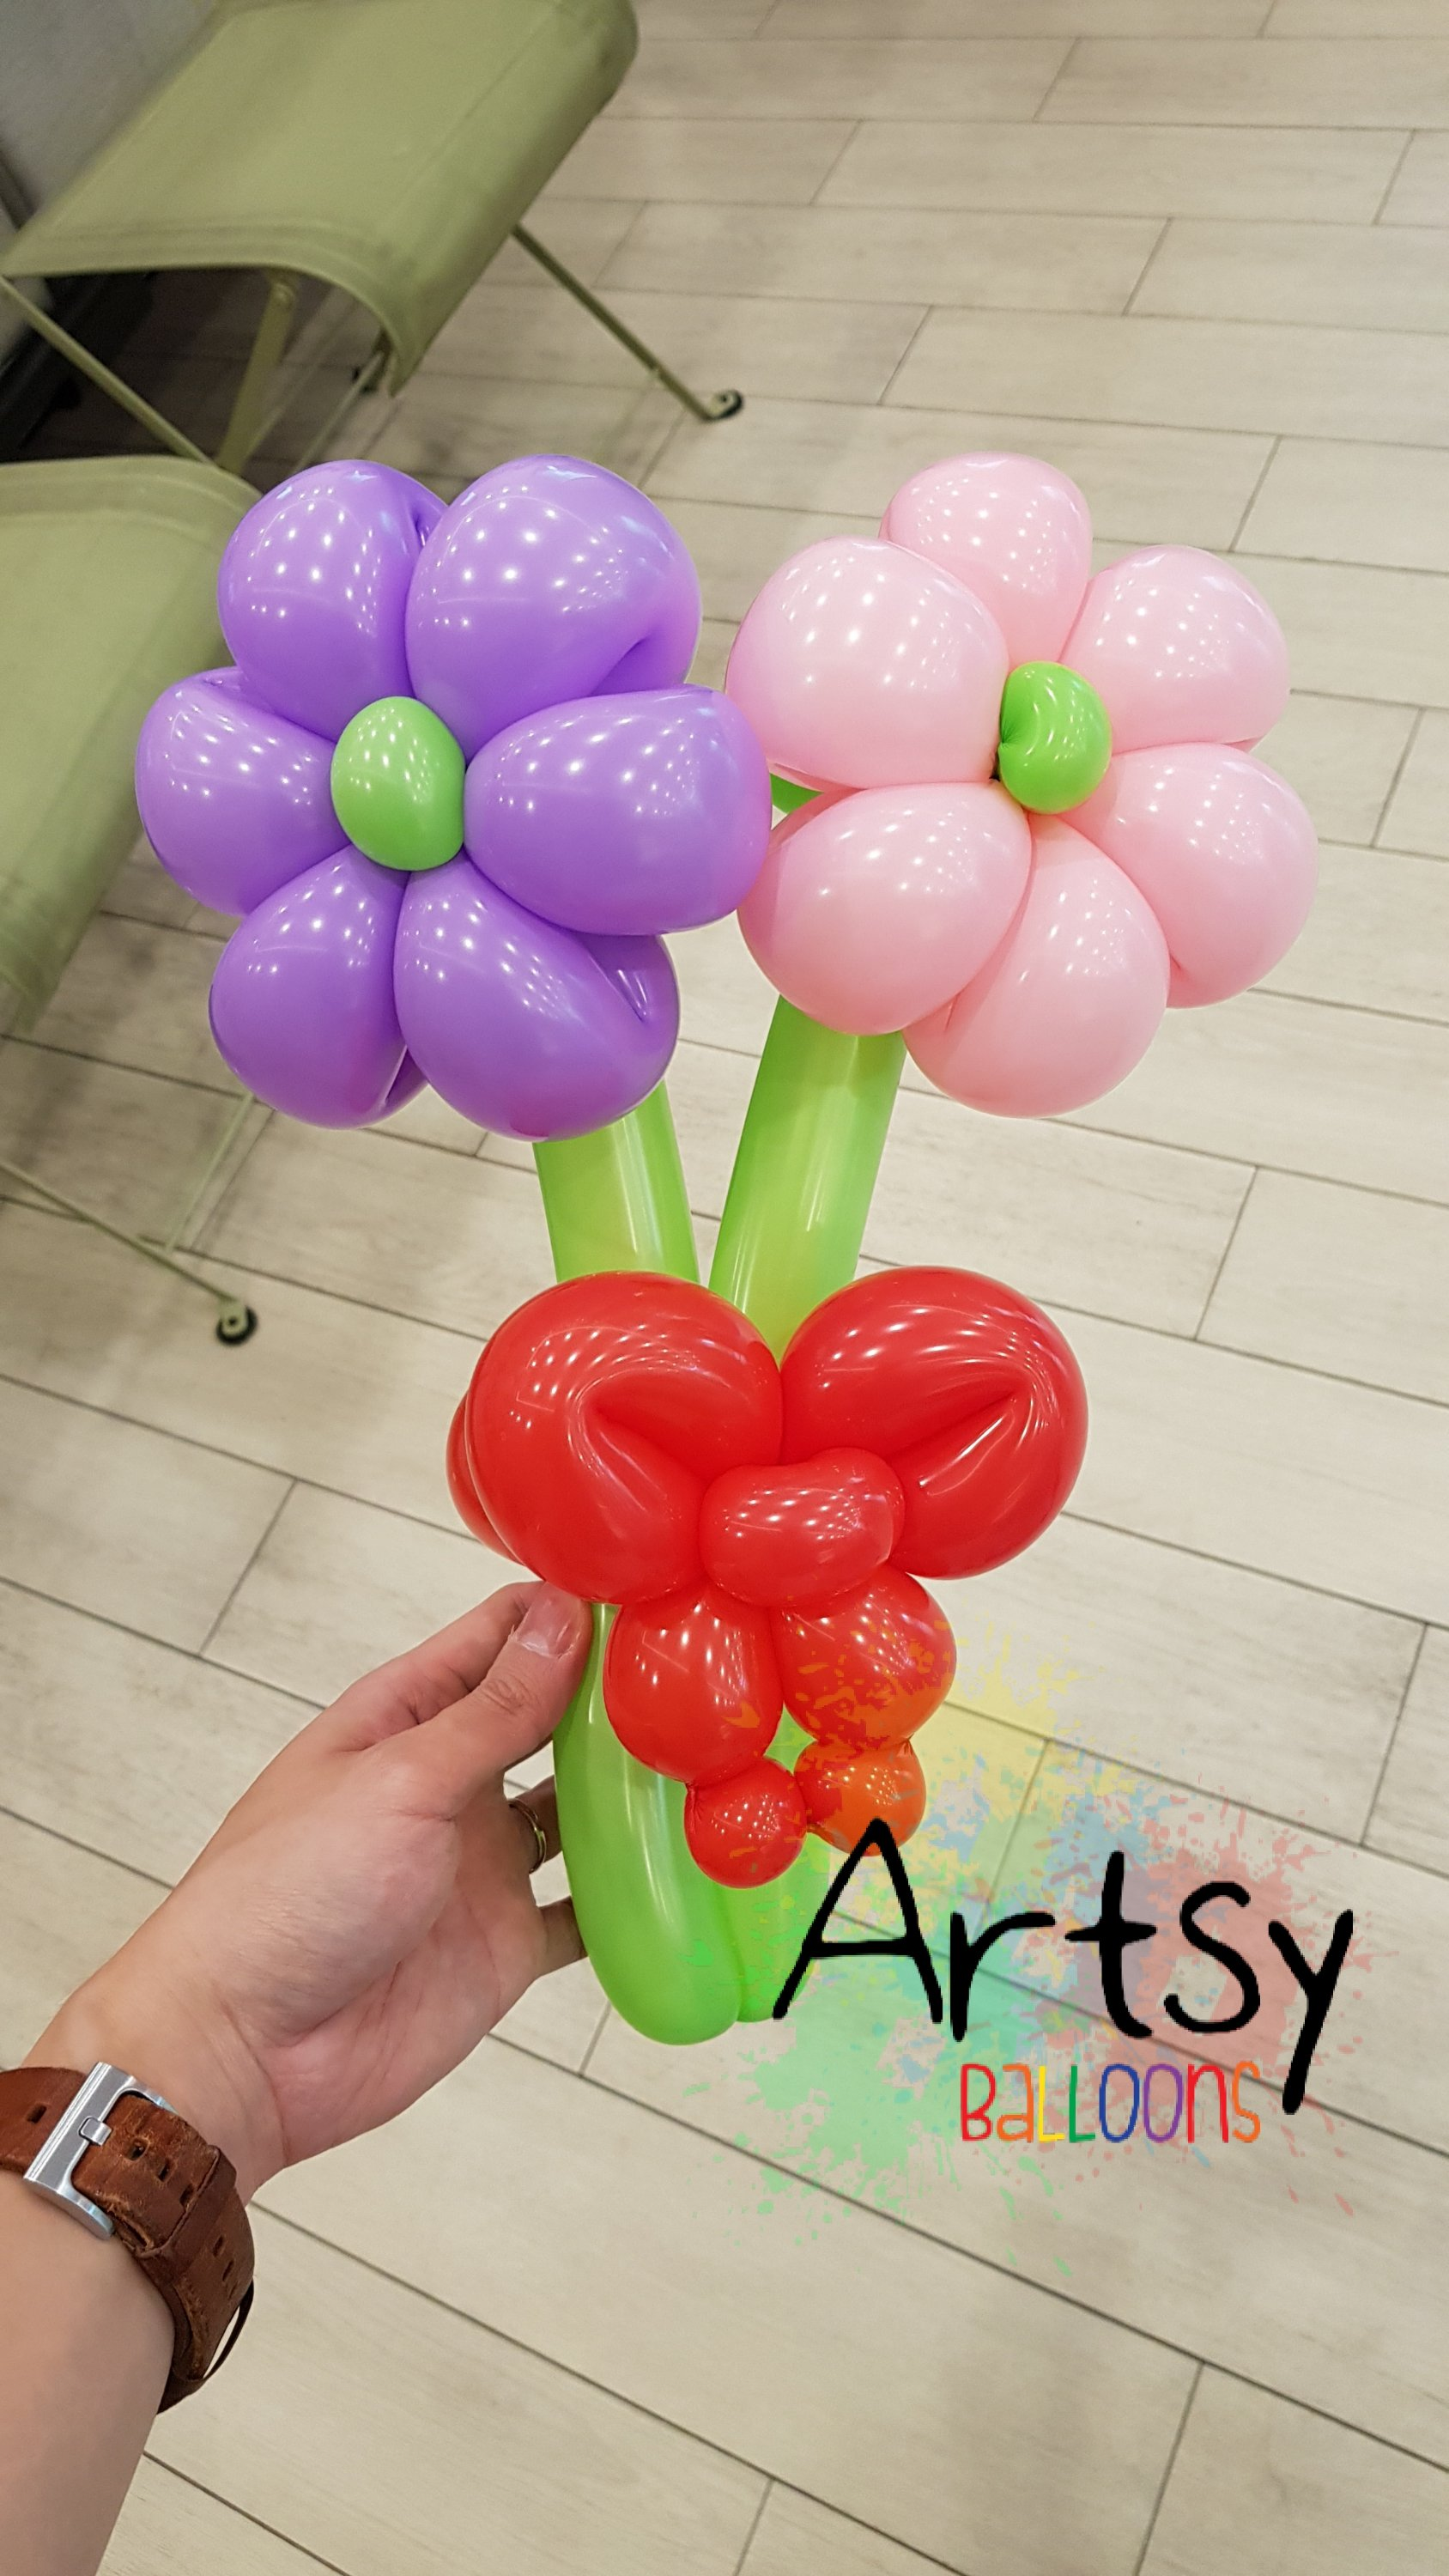 , Balloon sculpting for a birthday party!, Singapore Balloon Decoration Services - Balloon Workshop and Balloon Sculpting